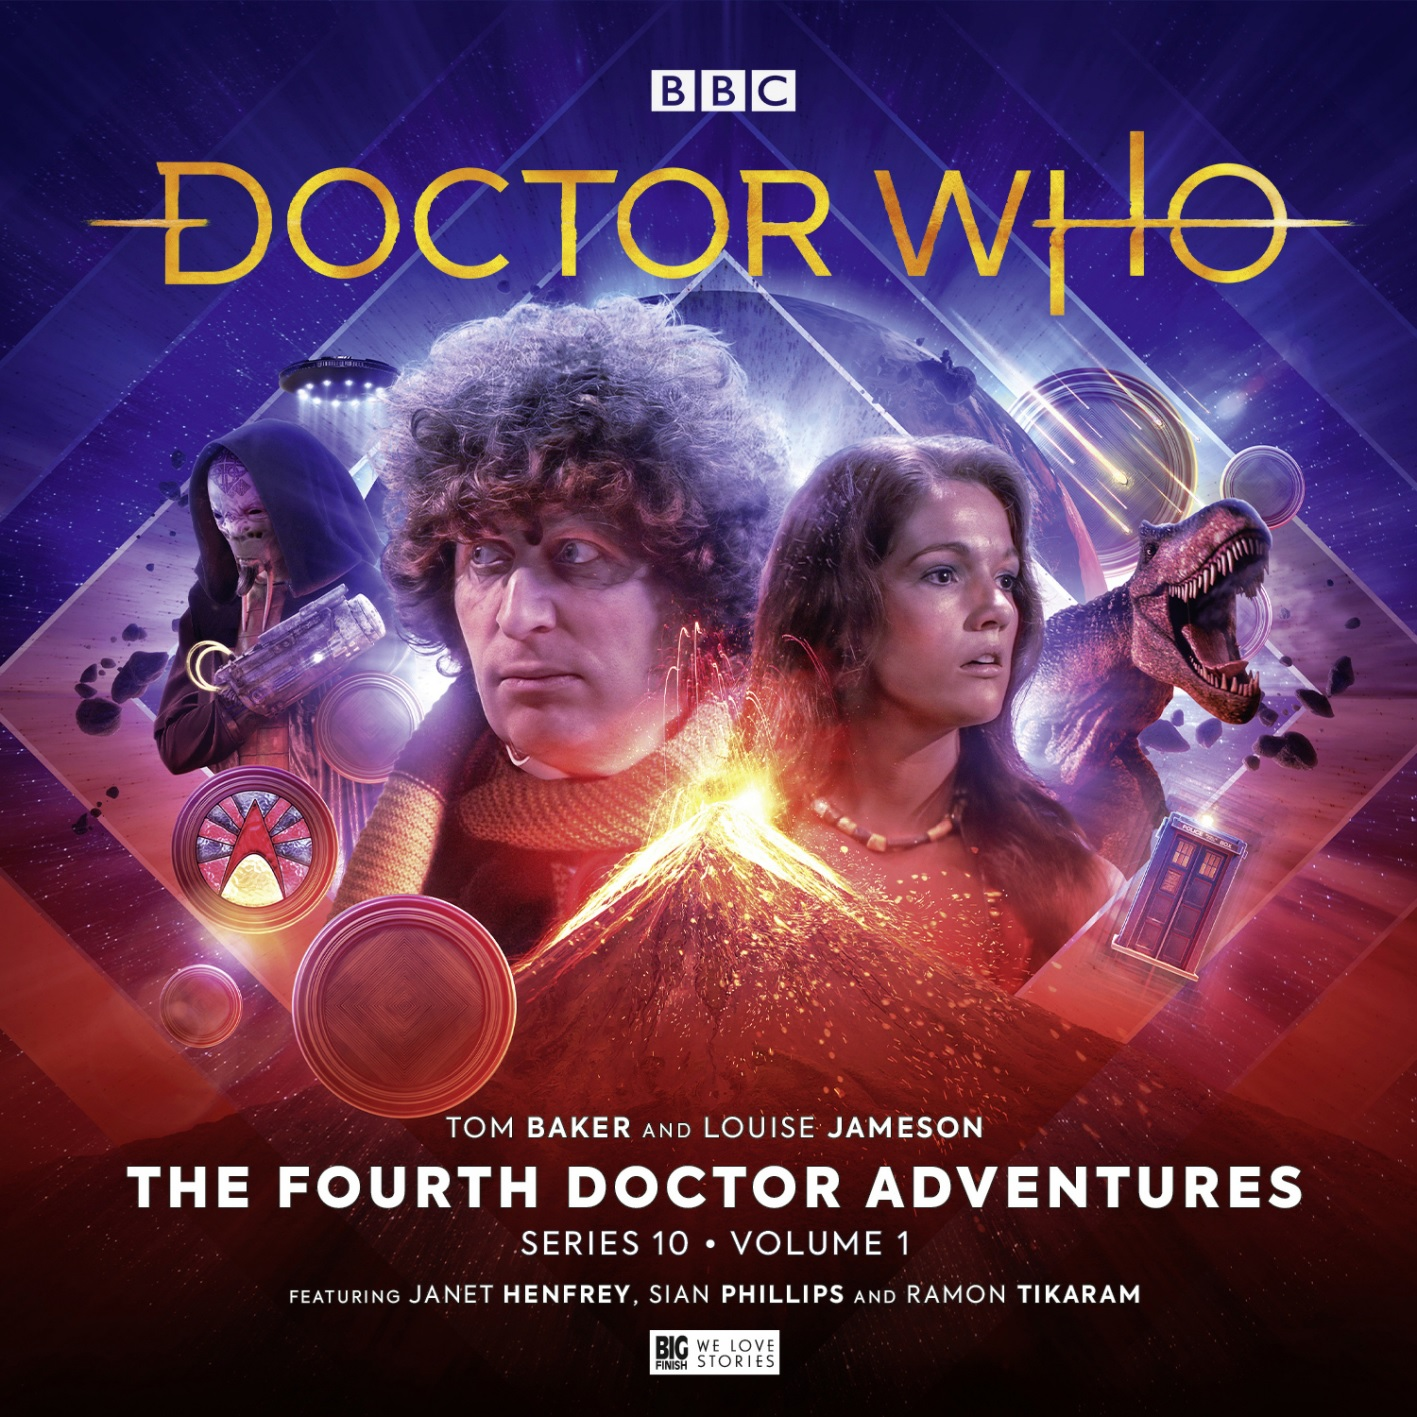 Out Now: Big Finish Celebrates Tom Baker's Birthday with the Fourth Doctor Series 10, Volume 1